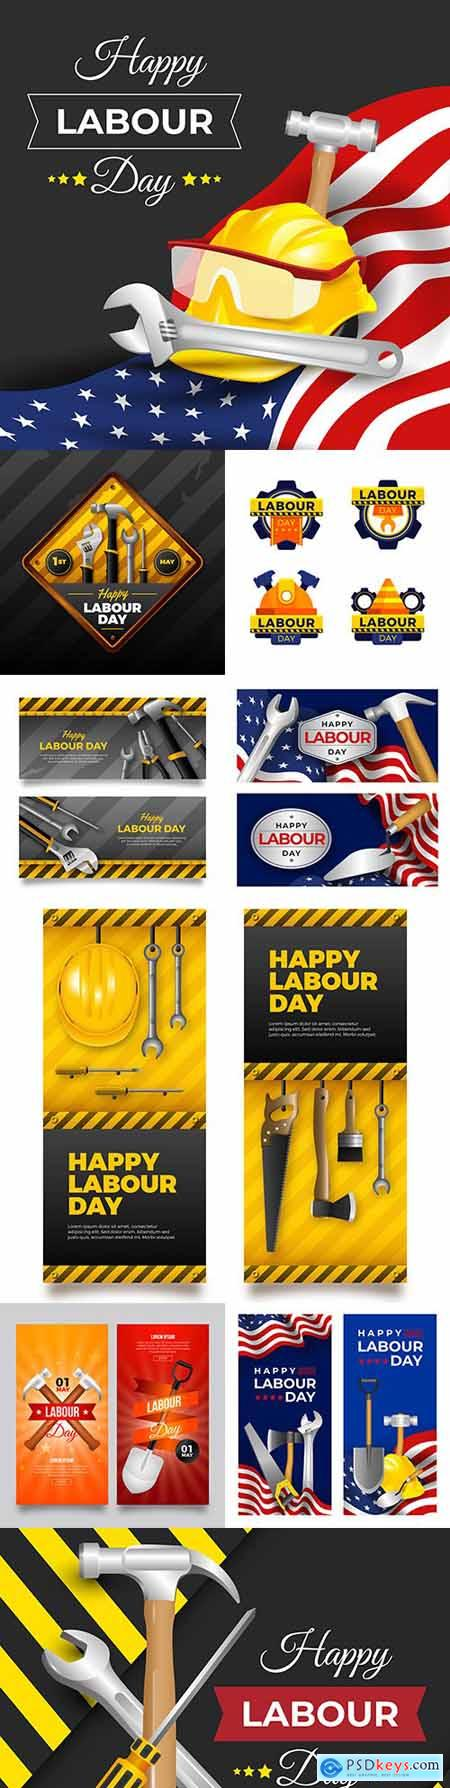 Happy Labor Day with instruments realistic banner